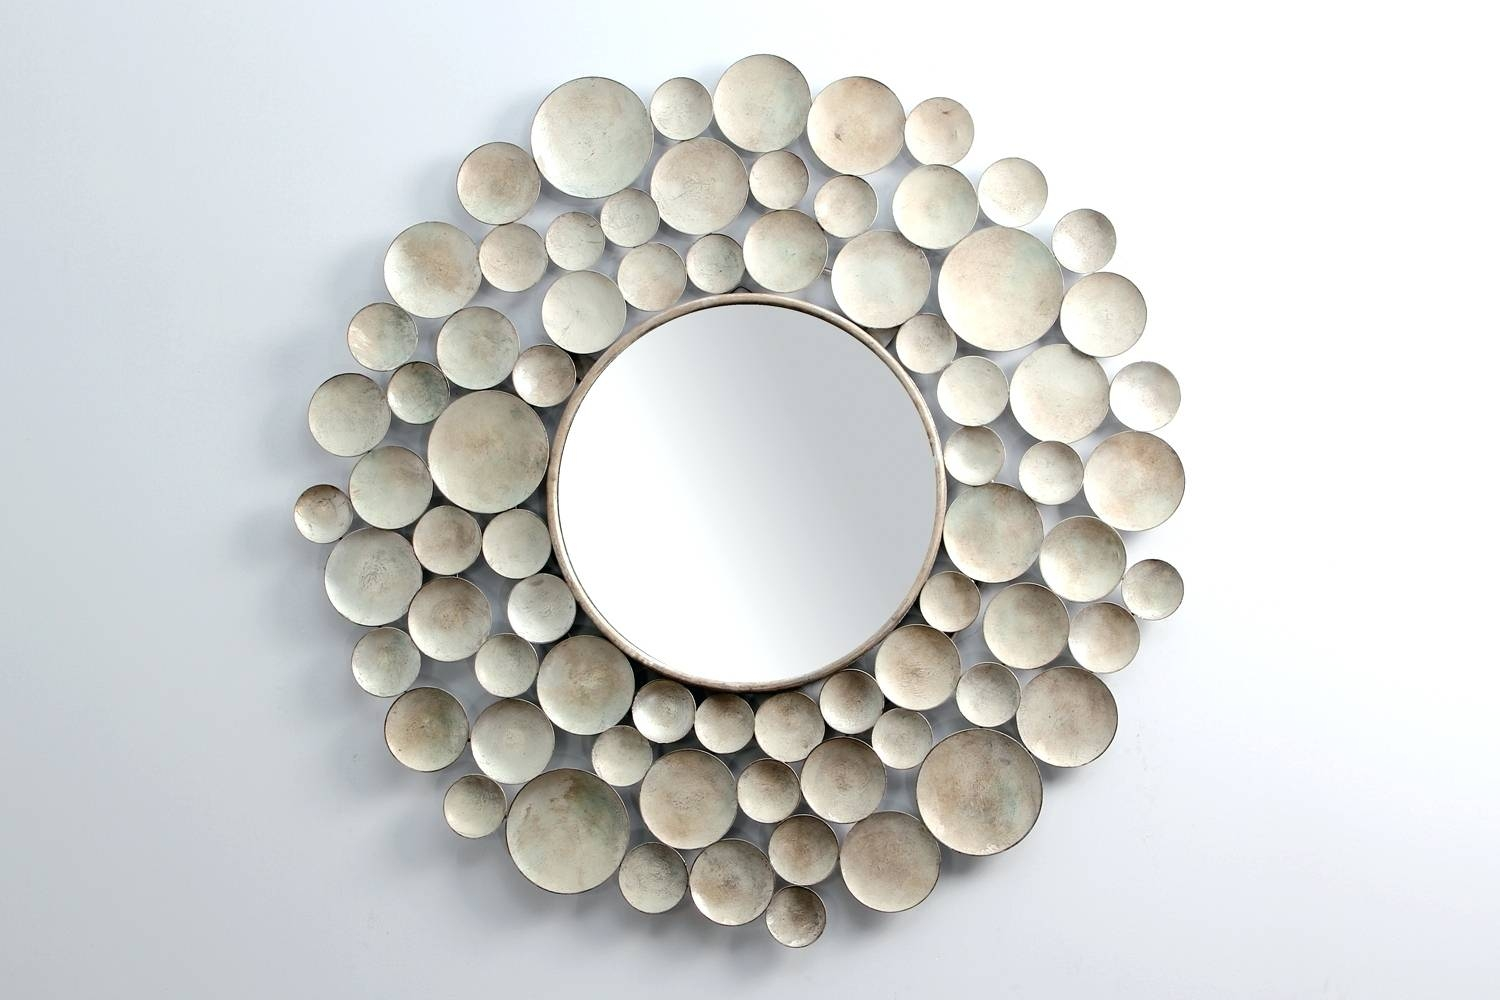 Mirrors : Modern Mirror Round Silver Mirror Wall Art Mirror With Regard To Most Current Mirror Circles Wall Art (View 16 of 20)